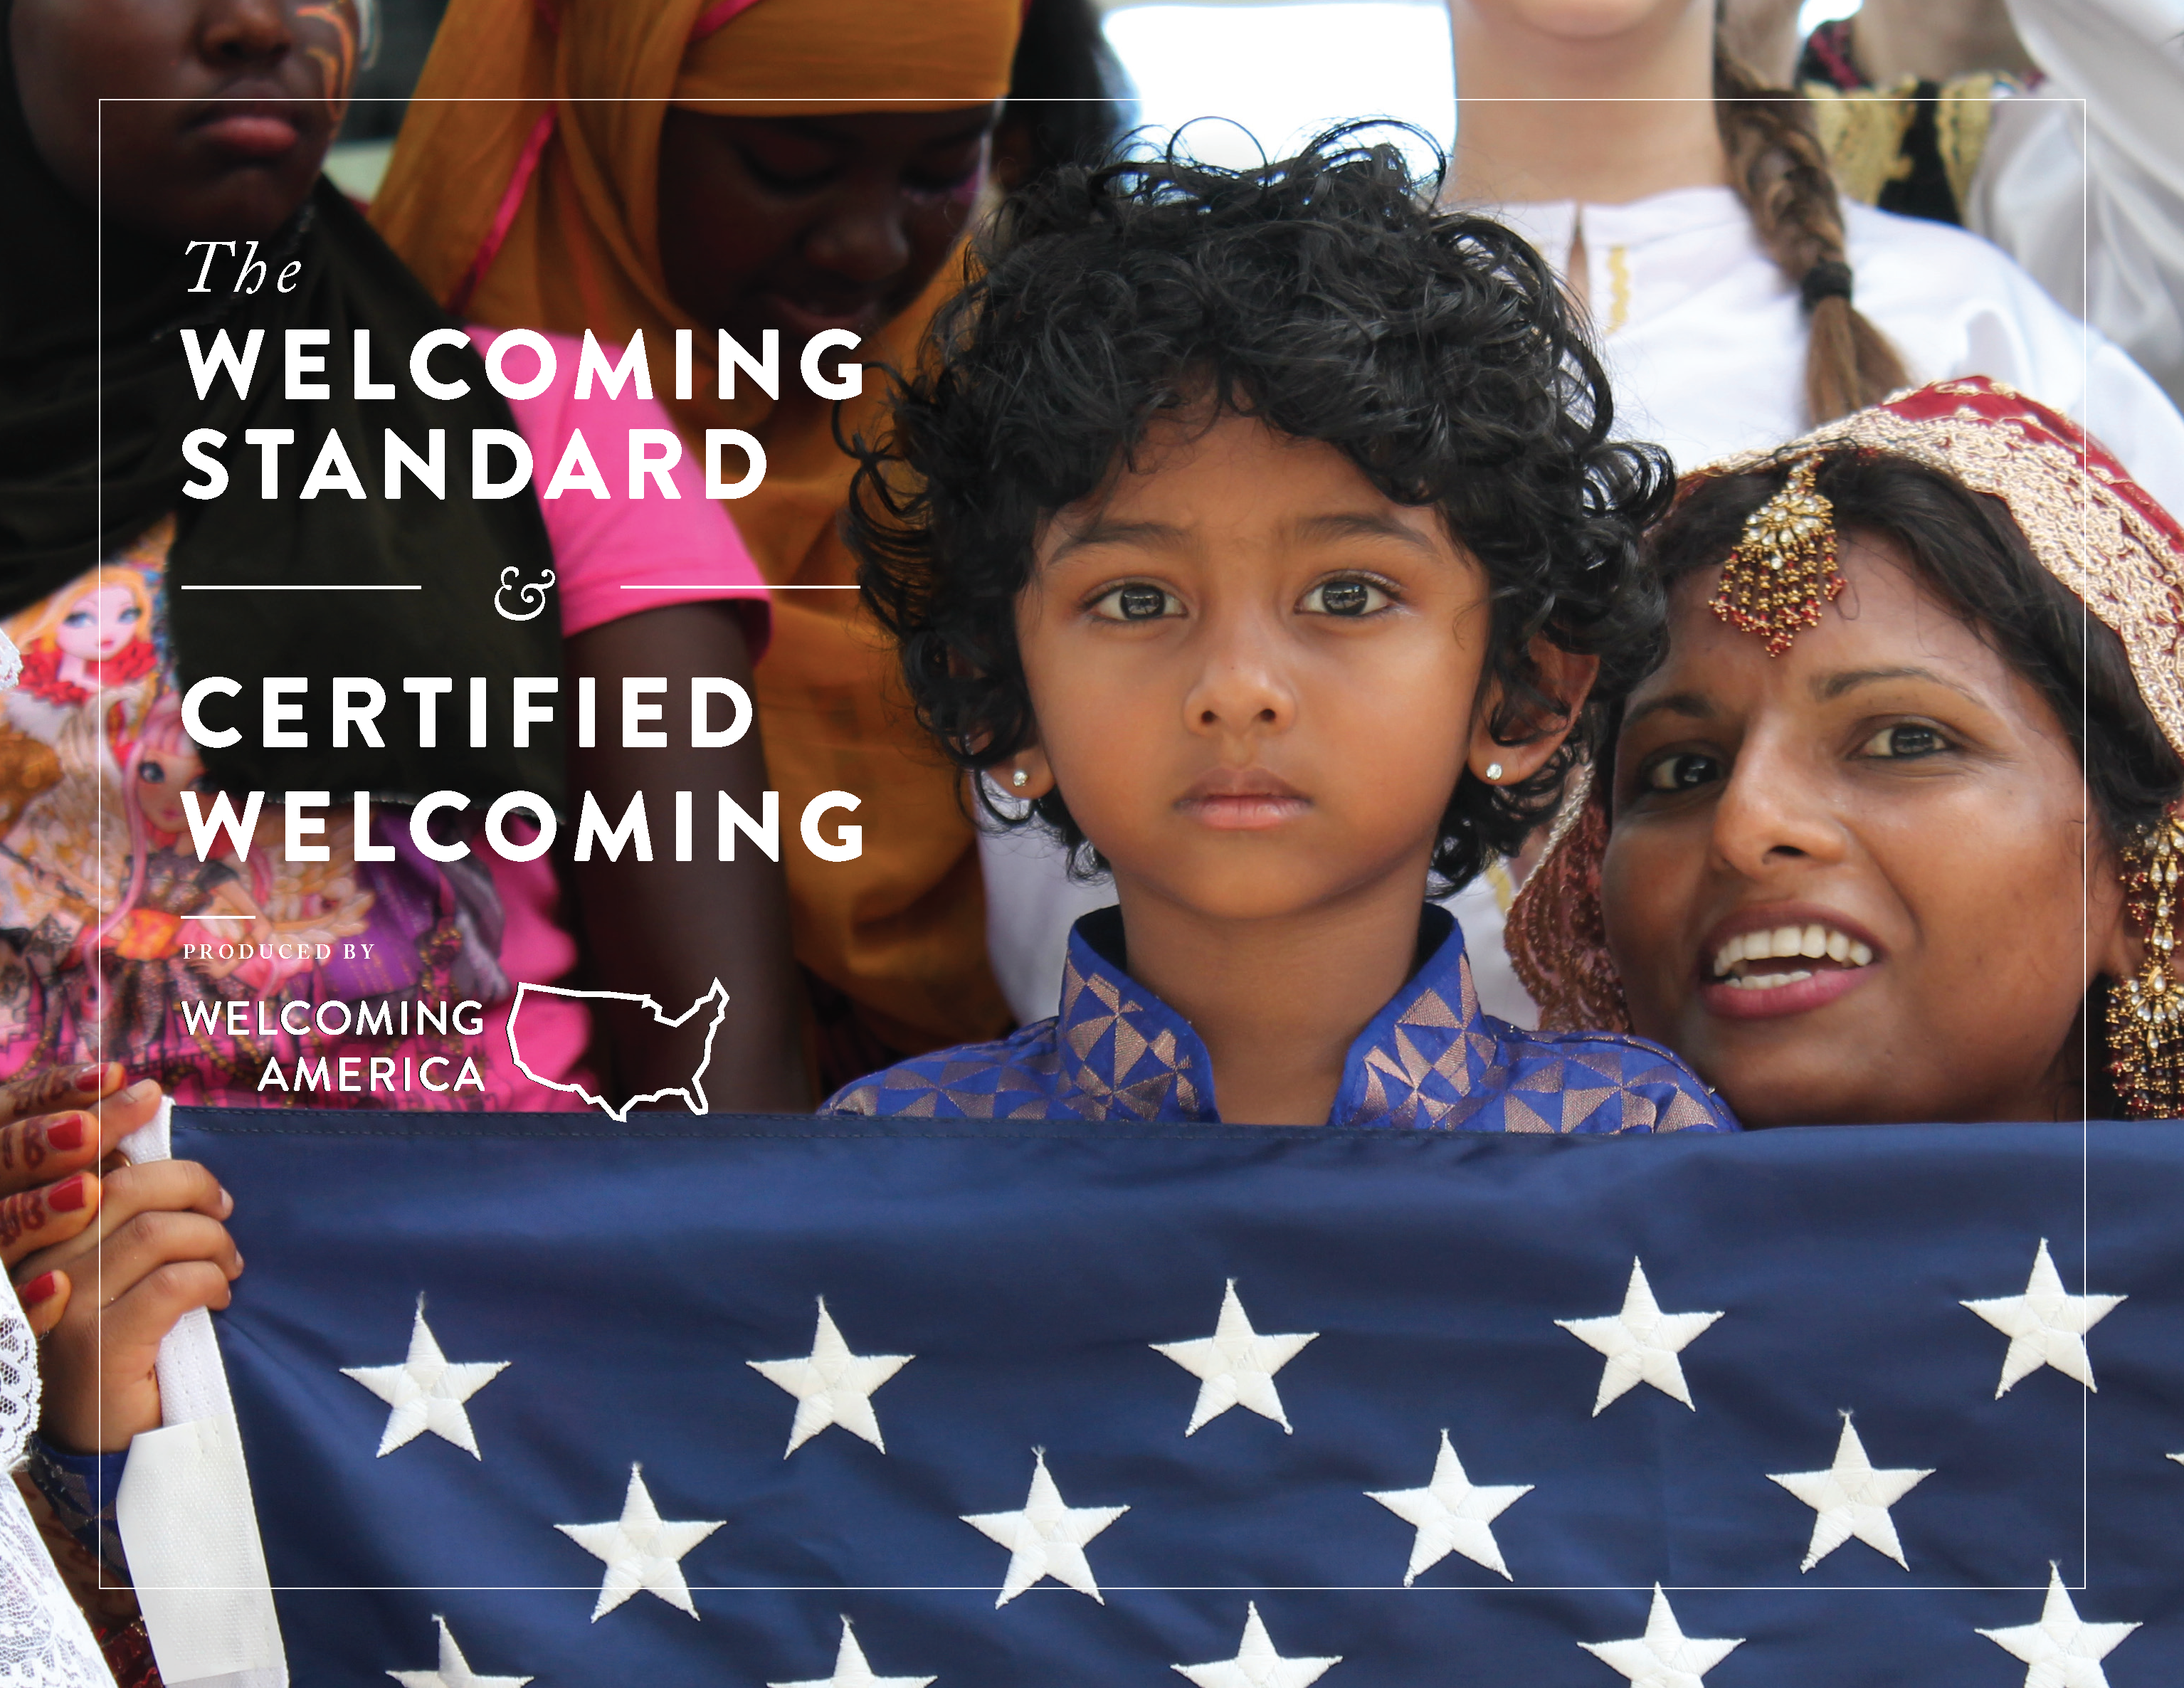 Welcoming-Standard-Certified-Welcoming-Cover